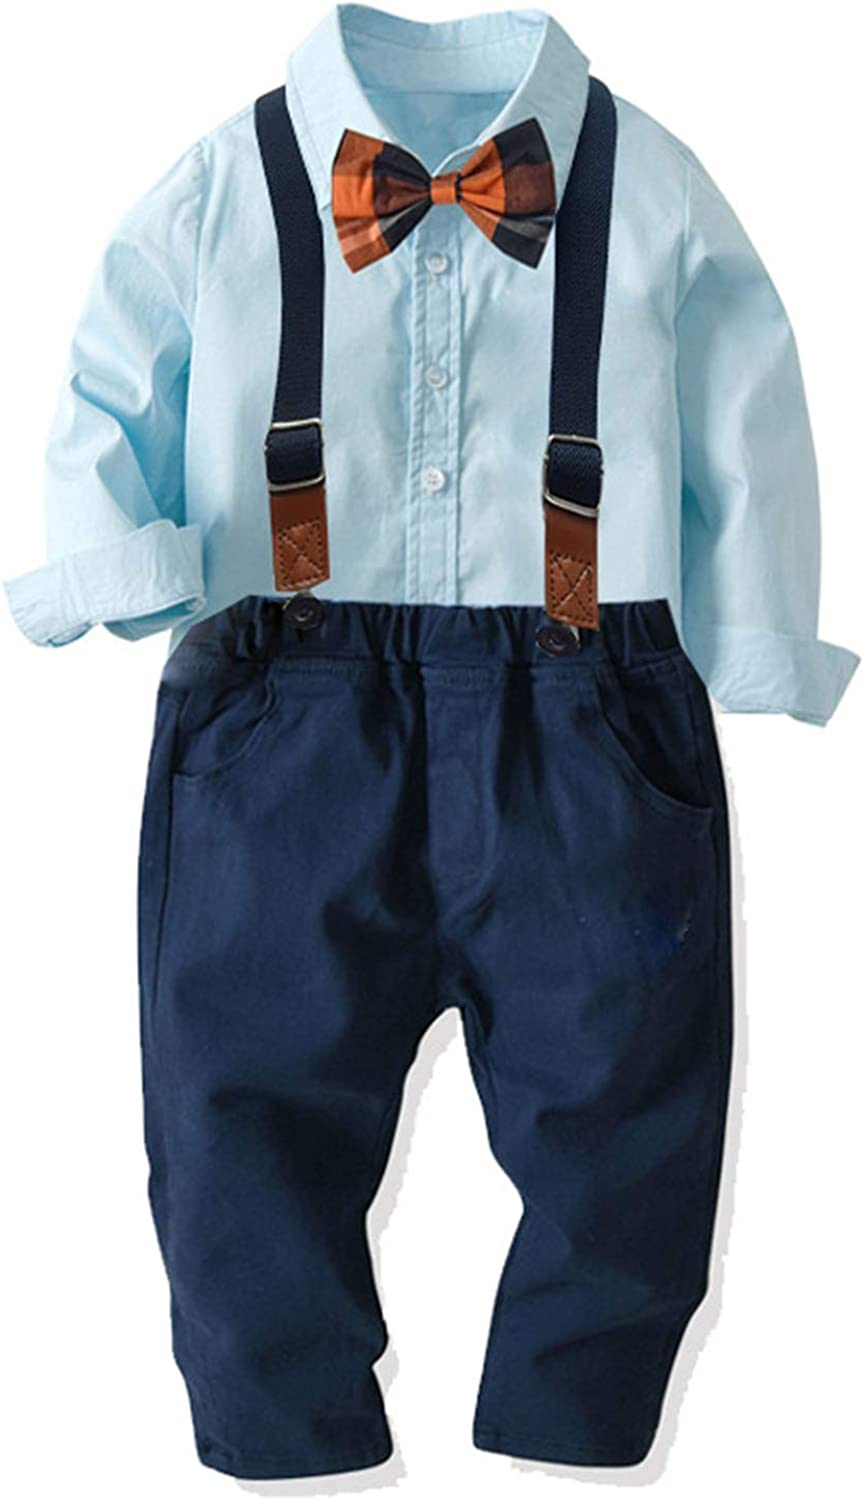 Suspender Pants 4 pcs Formal Outfit Suit Clothes CHRONSTYLE Little Boys Long Sleeve Gentleman Outfit Suits SetDress Shirt with Bowtie